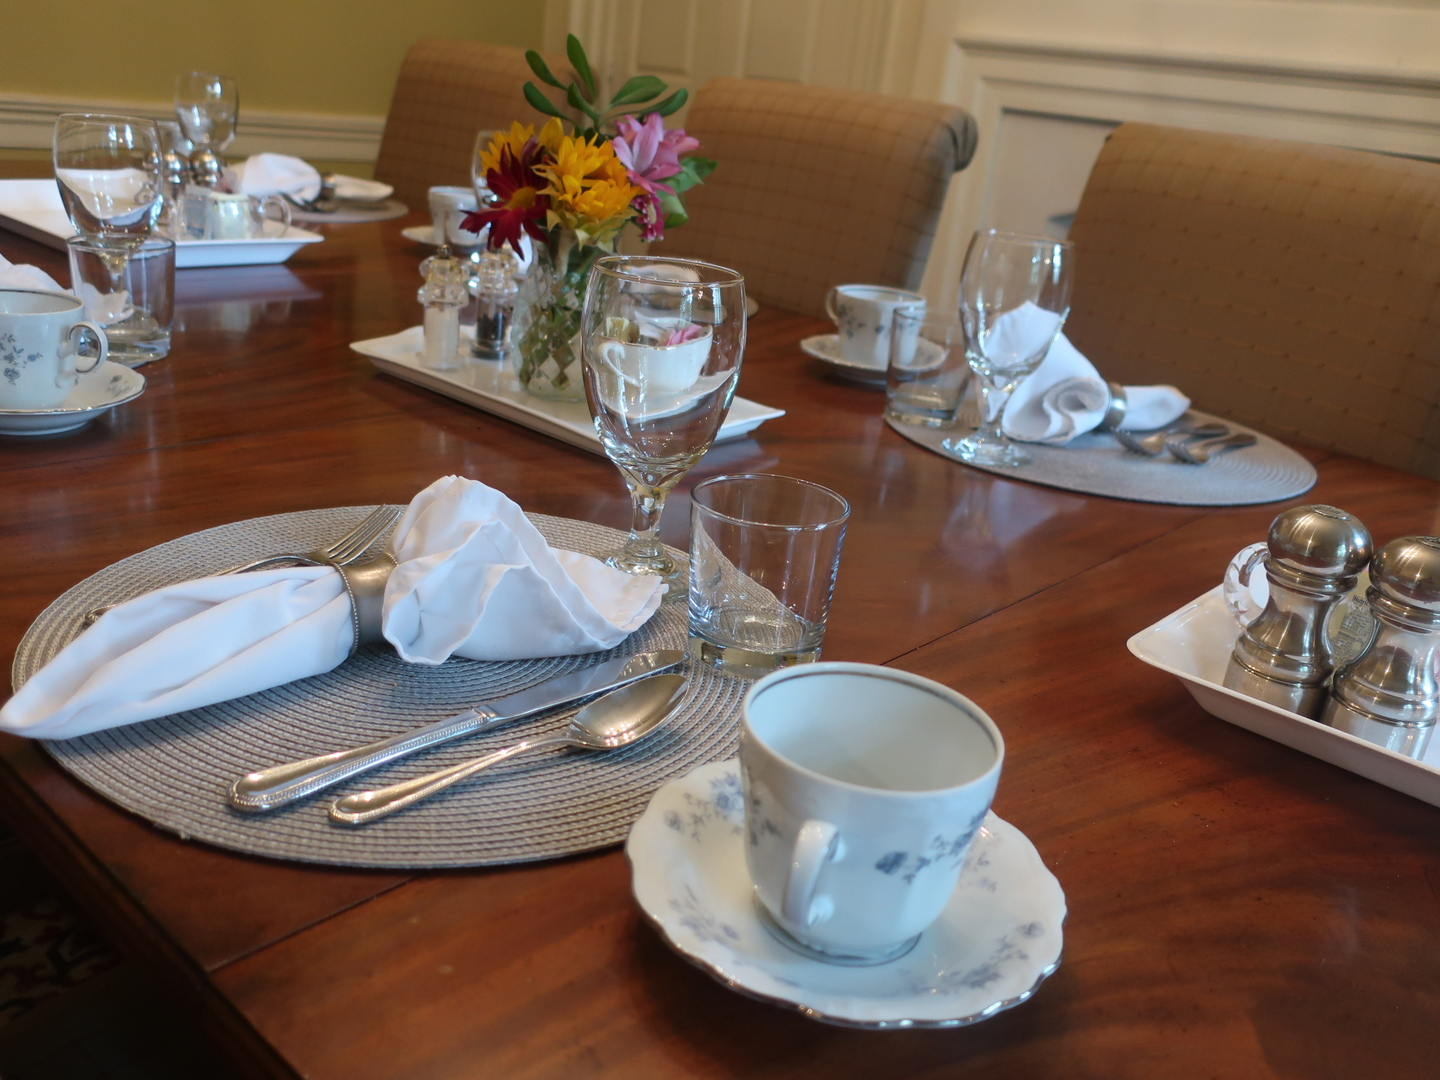 A cup of coffee on a table at Inn at Glencairn.